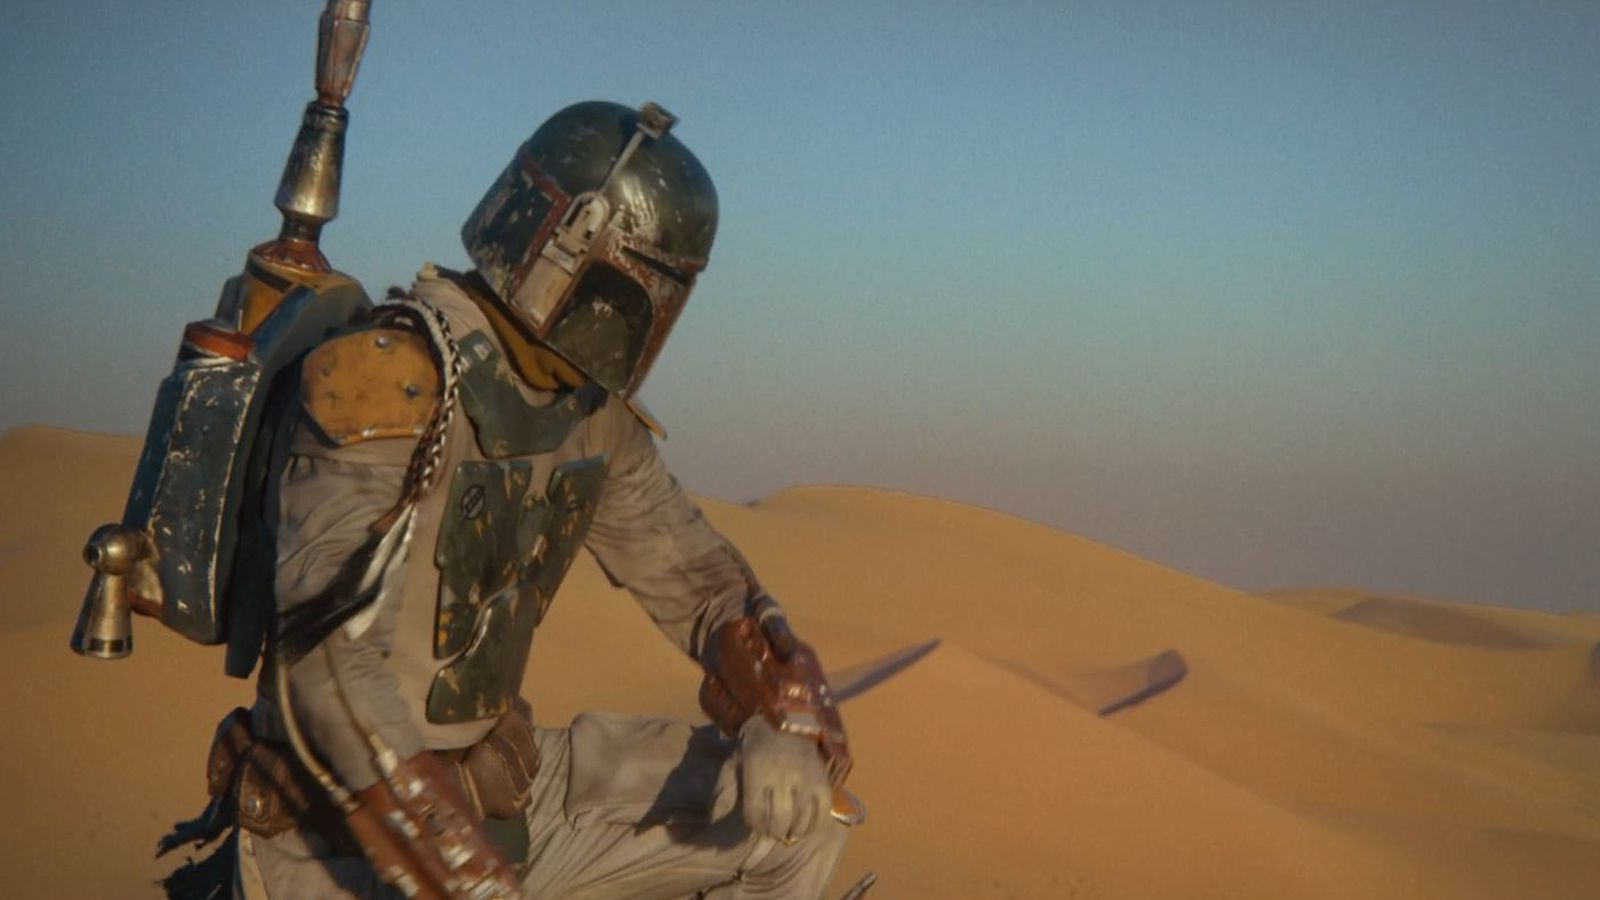 This Is How The Boba Fett Star Wars Spinoff Movie Should